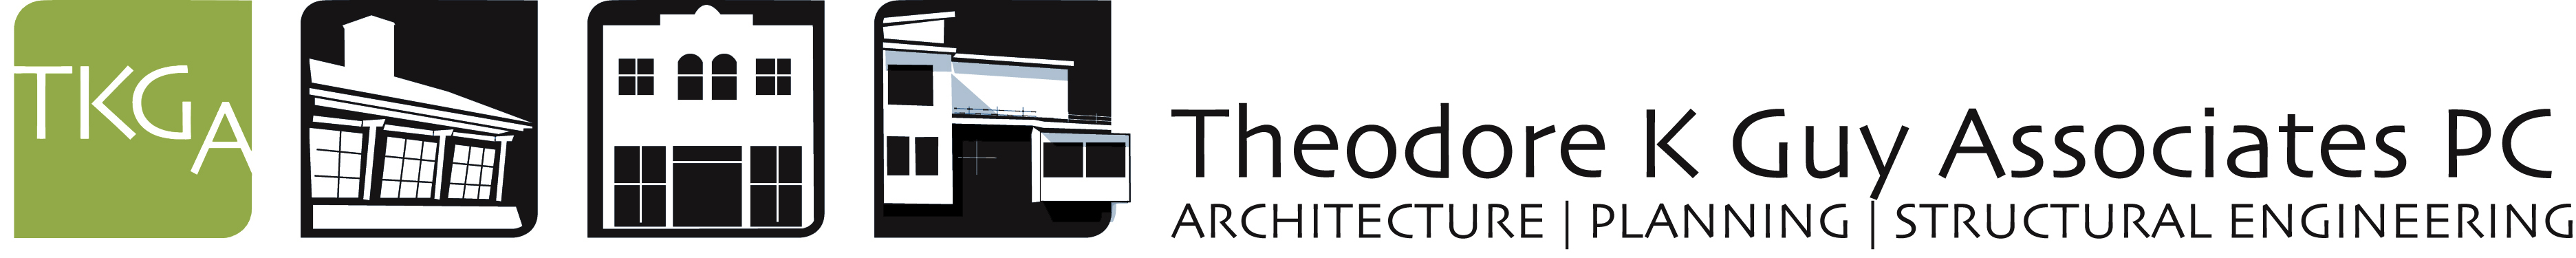 aspen architect tkga architect planner and structural engineer